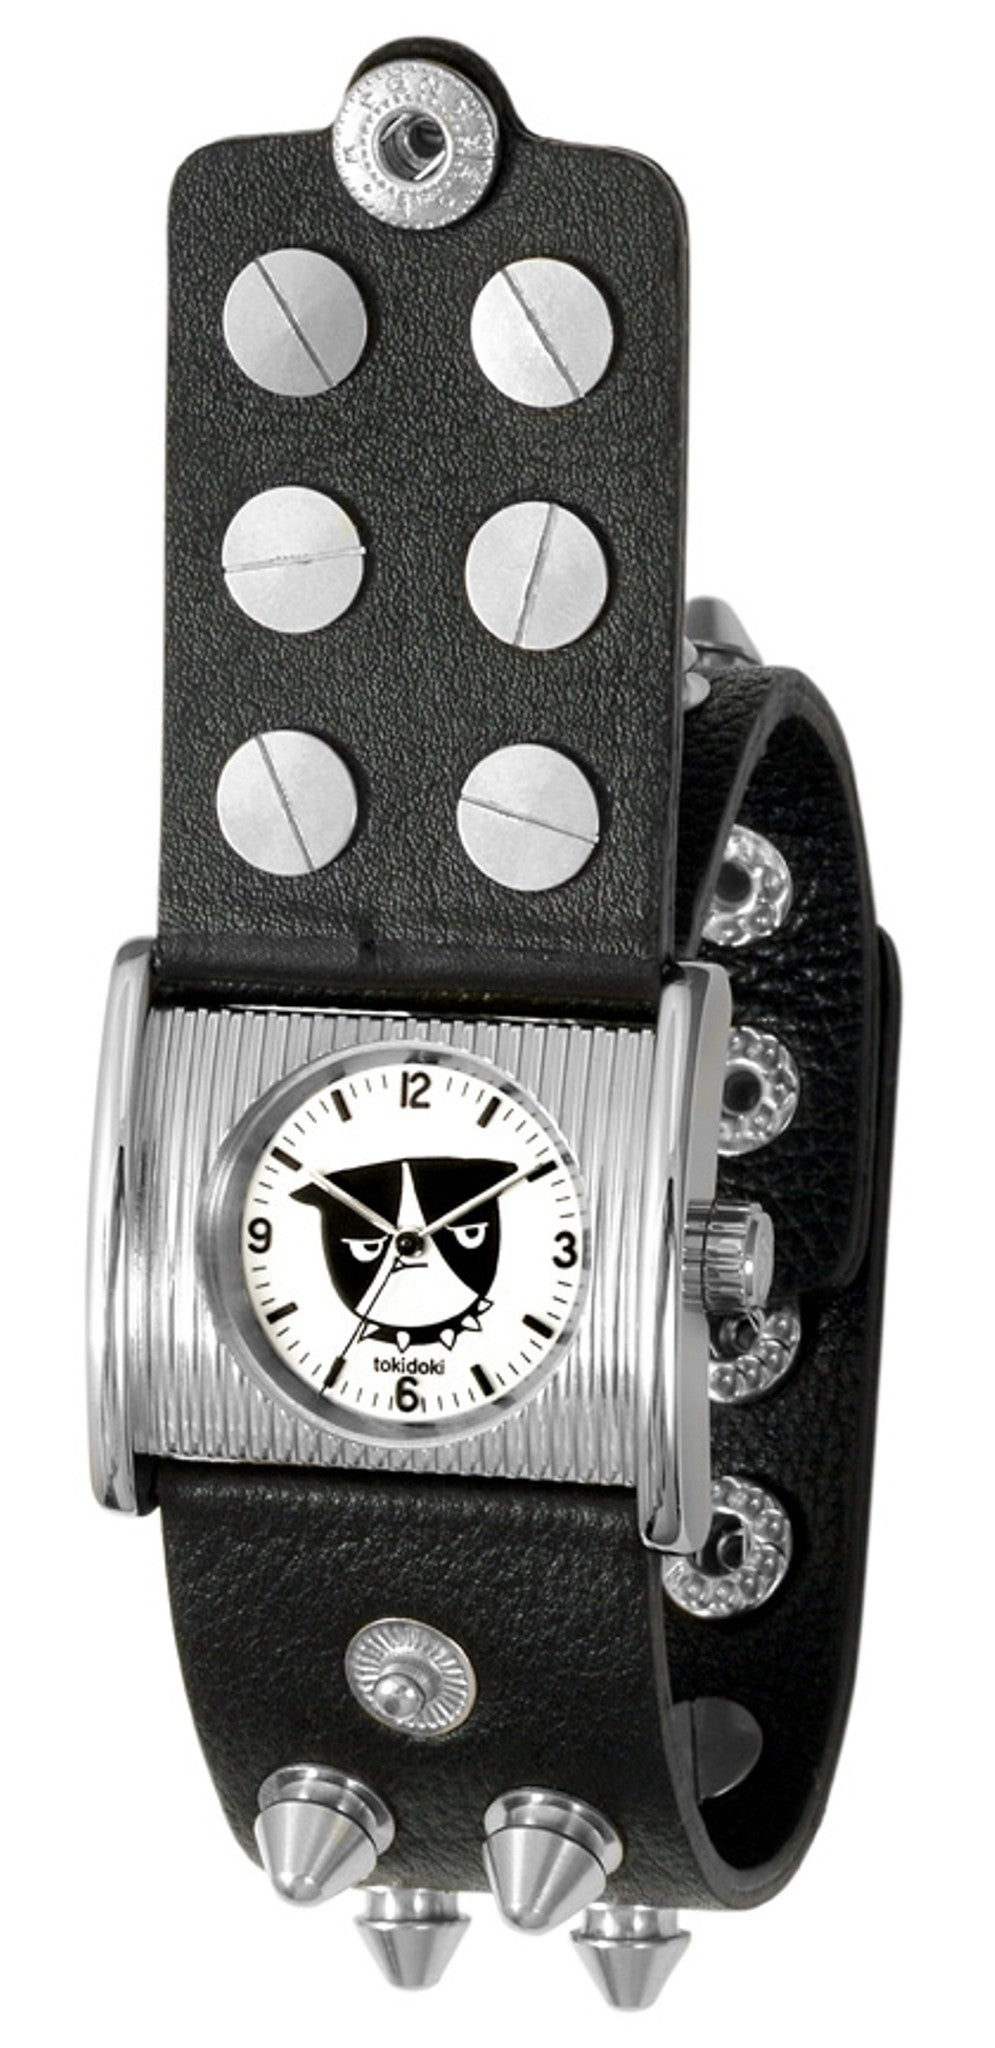 Tokidoki Nero Spike Watch